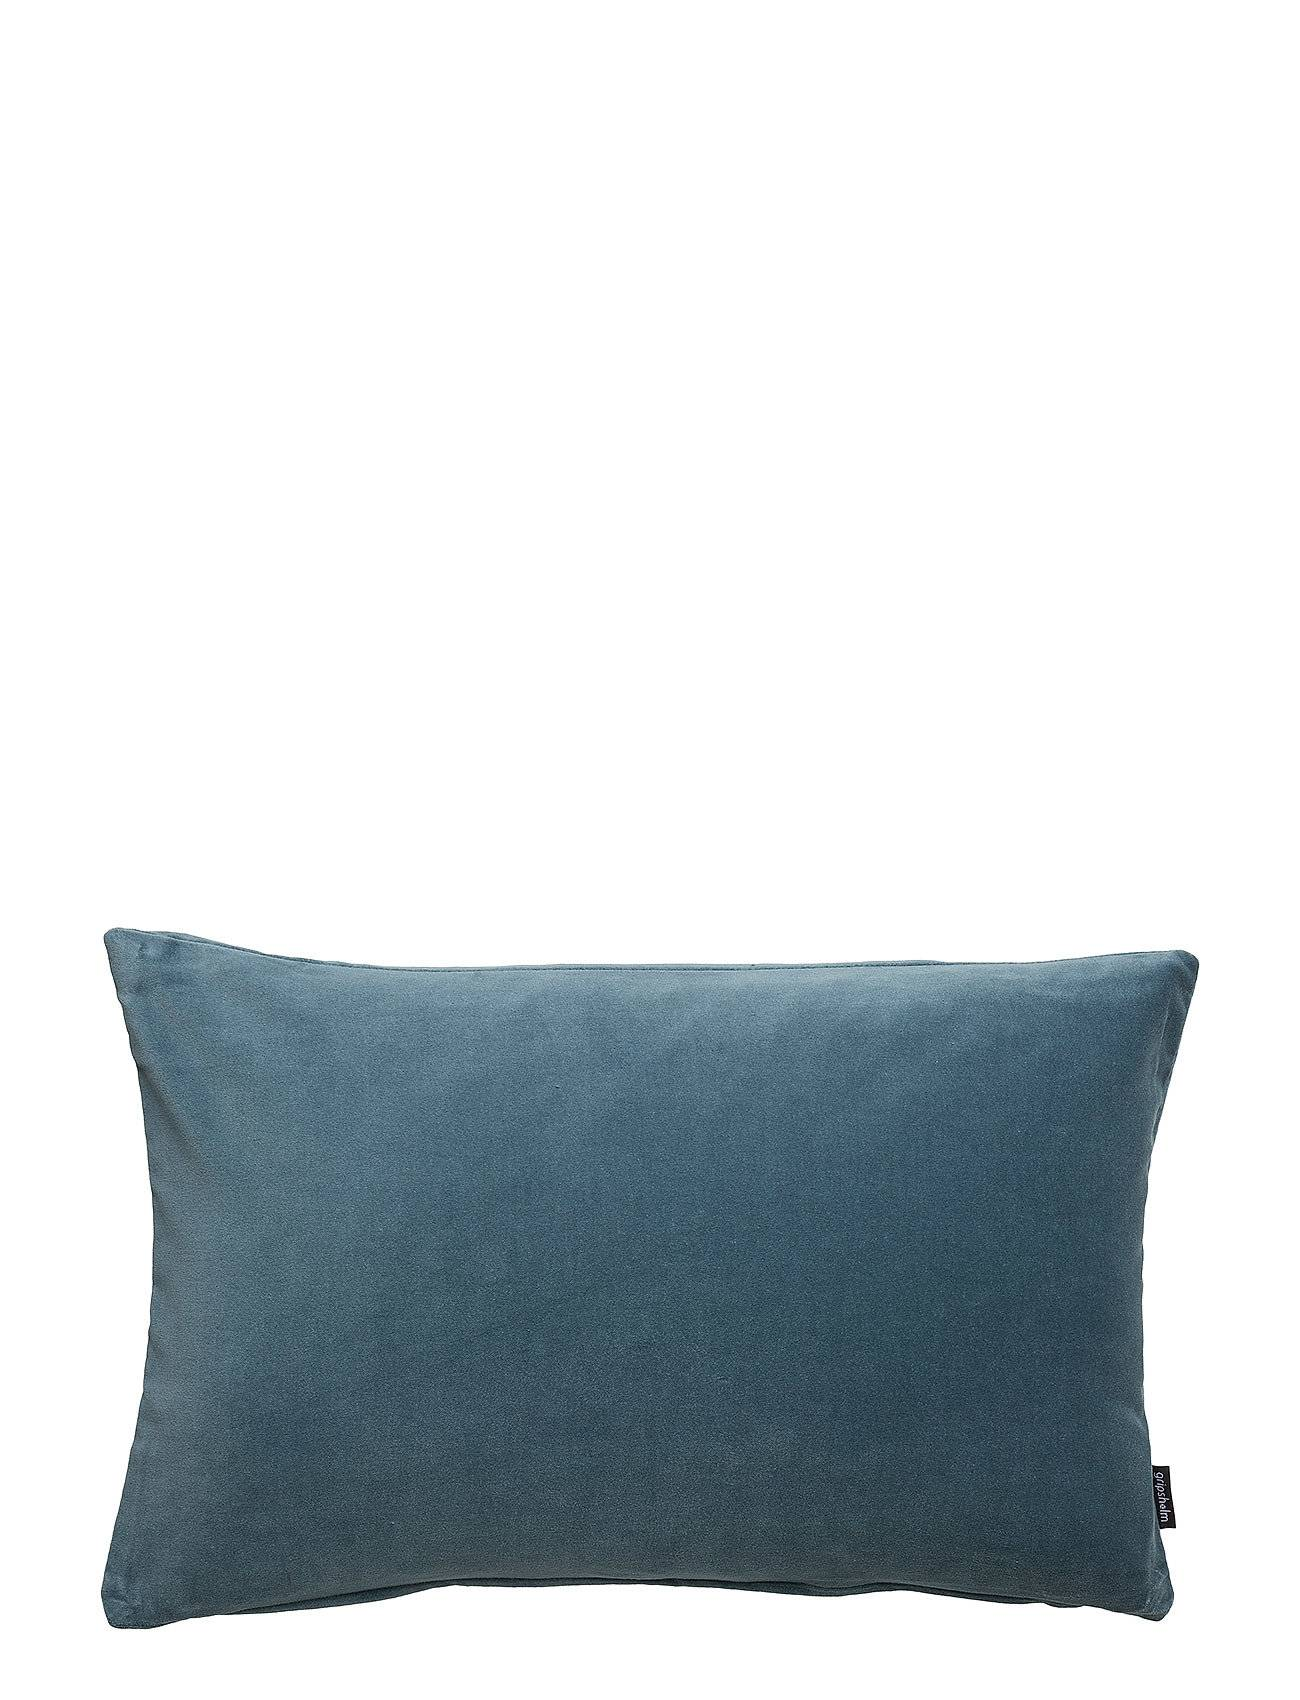 Gripsholm Cushion Cover Valter